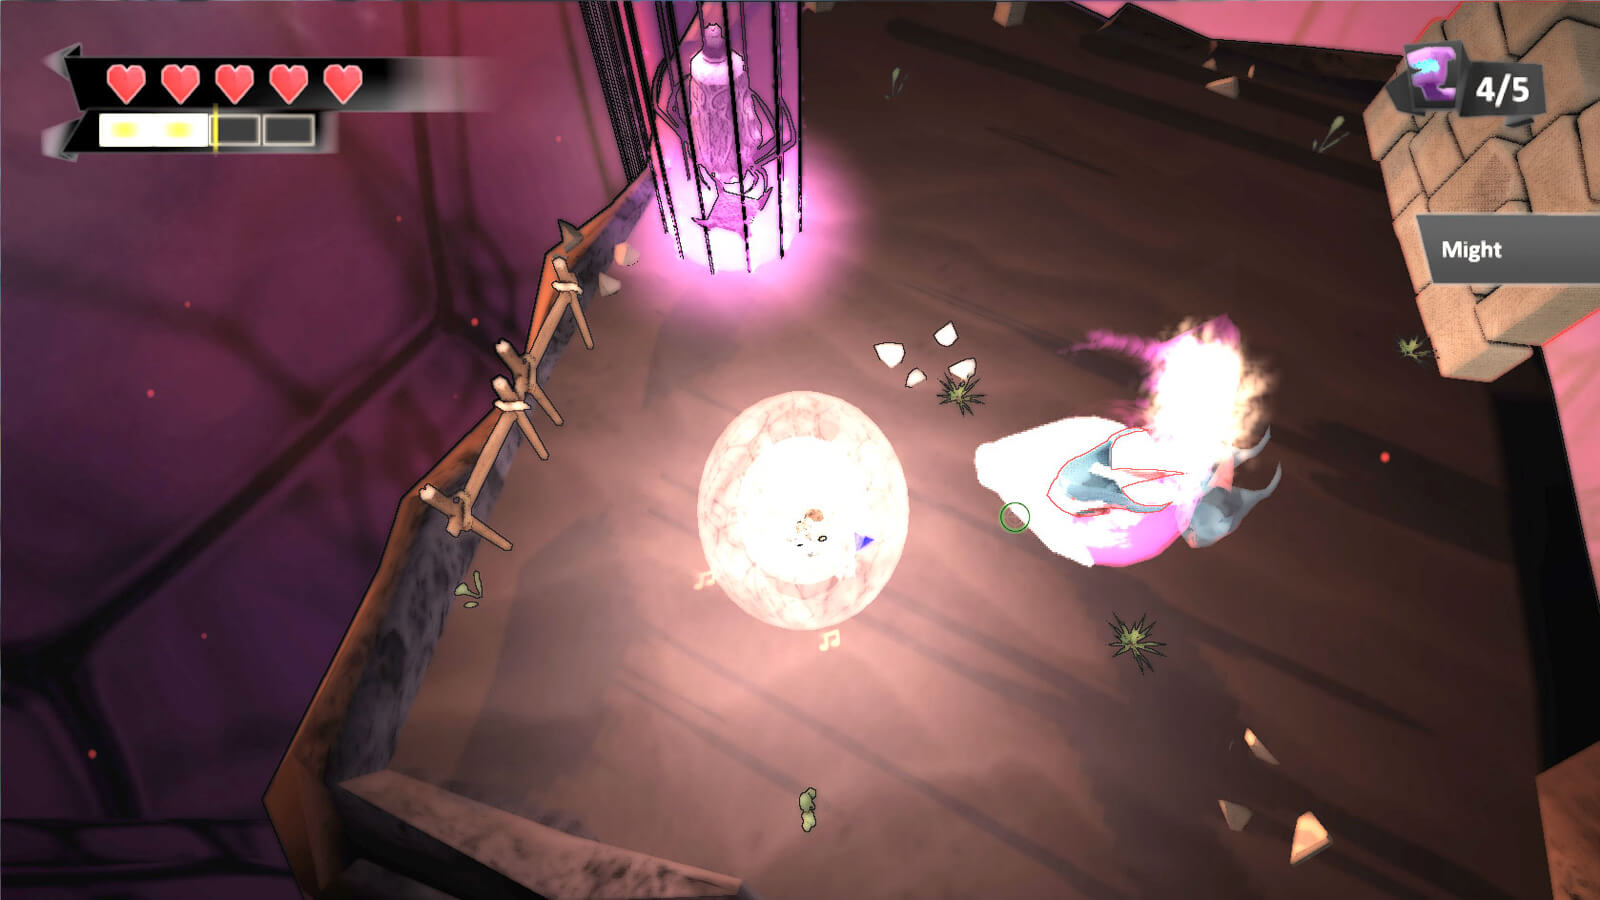 A glowing white sphere appears in the center of a floating platform. Two abstract glowing creatures stand nearby.